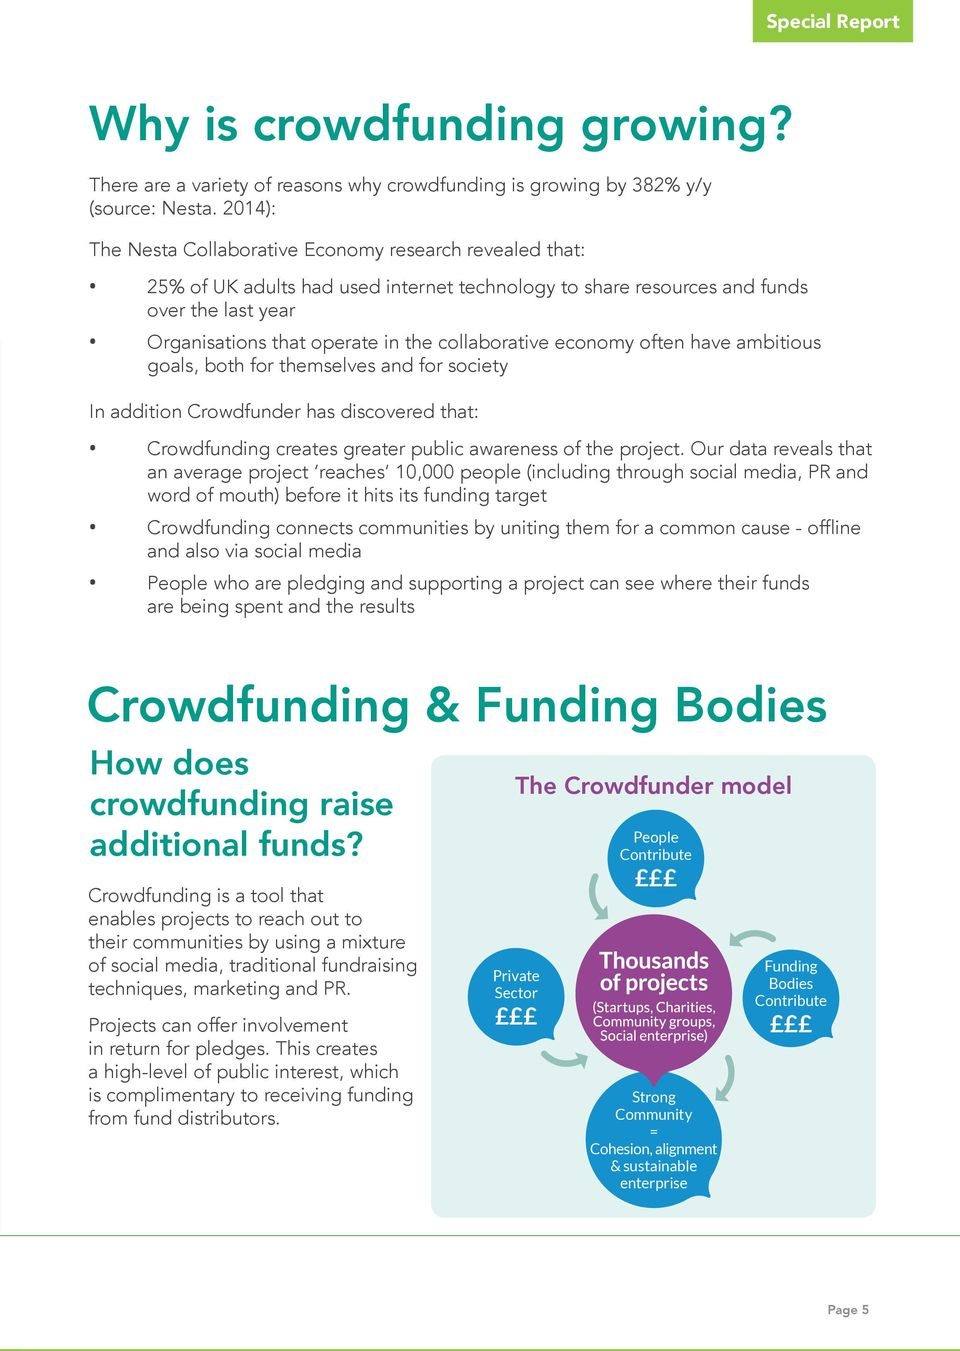 collaborative economy often have ambitious goals, both for themselves and for society In addition Crowdfunder has discovered that: Crowdfunding creates greater public awareness of the project.